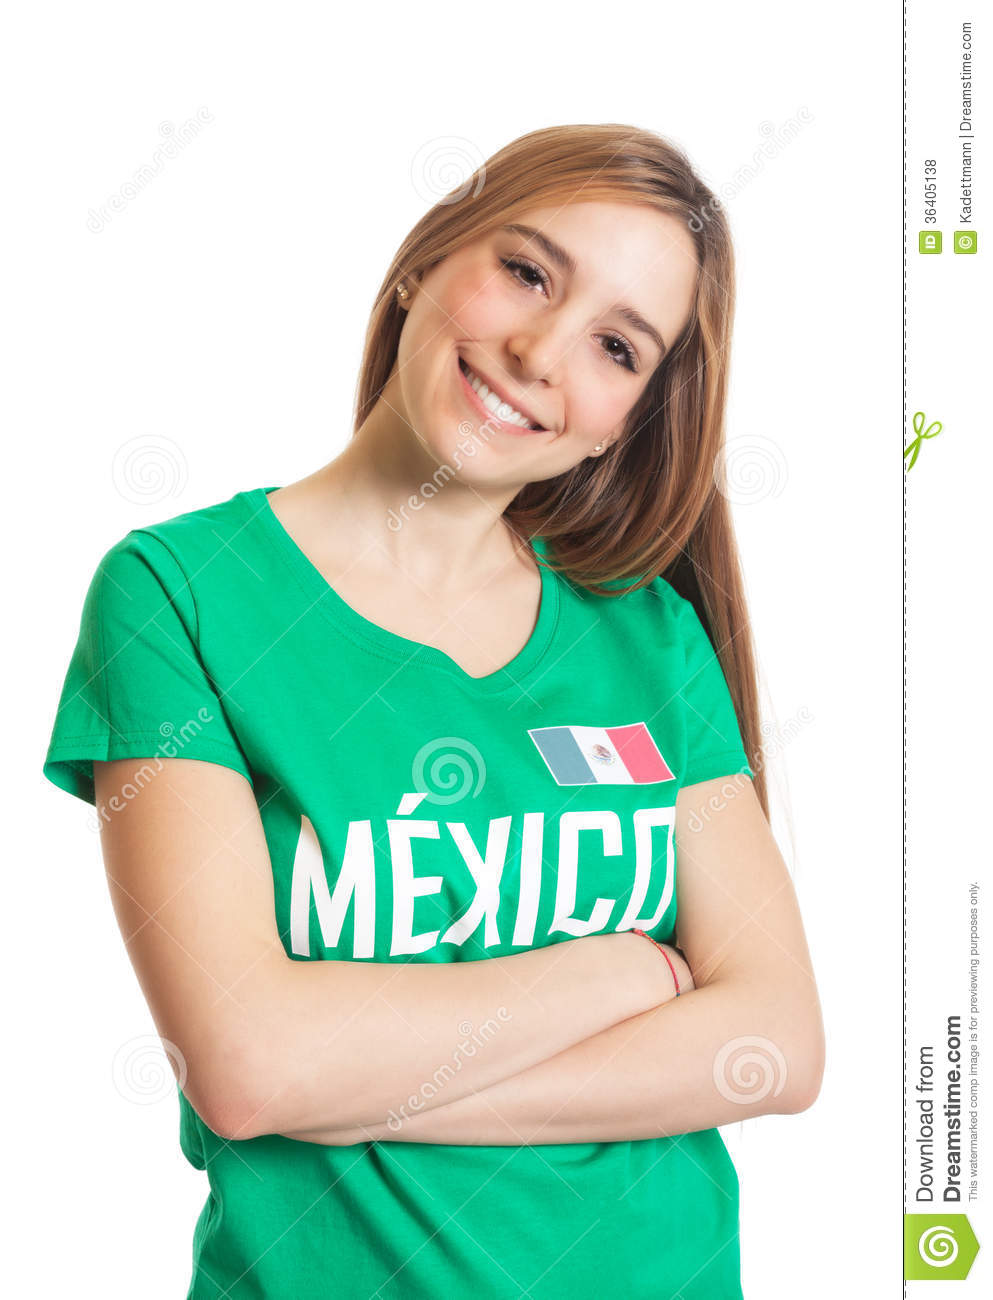 White girl dating mexican